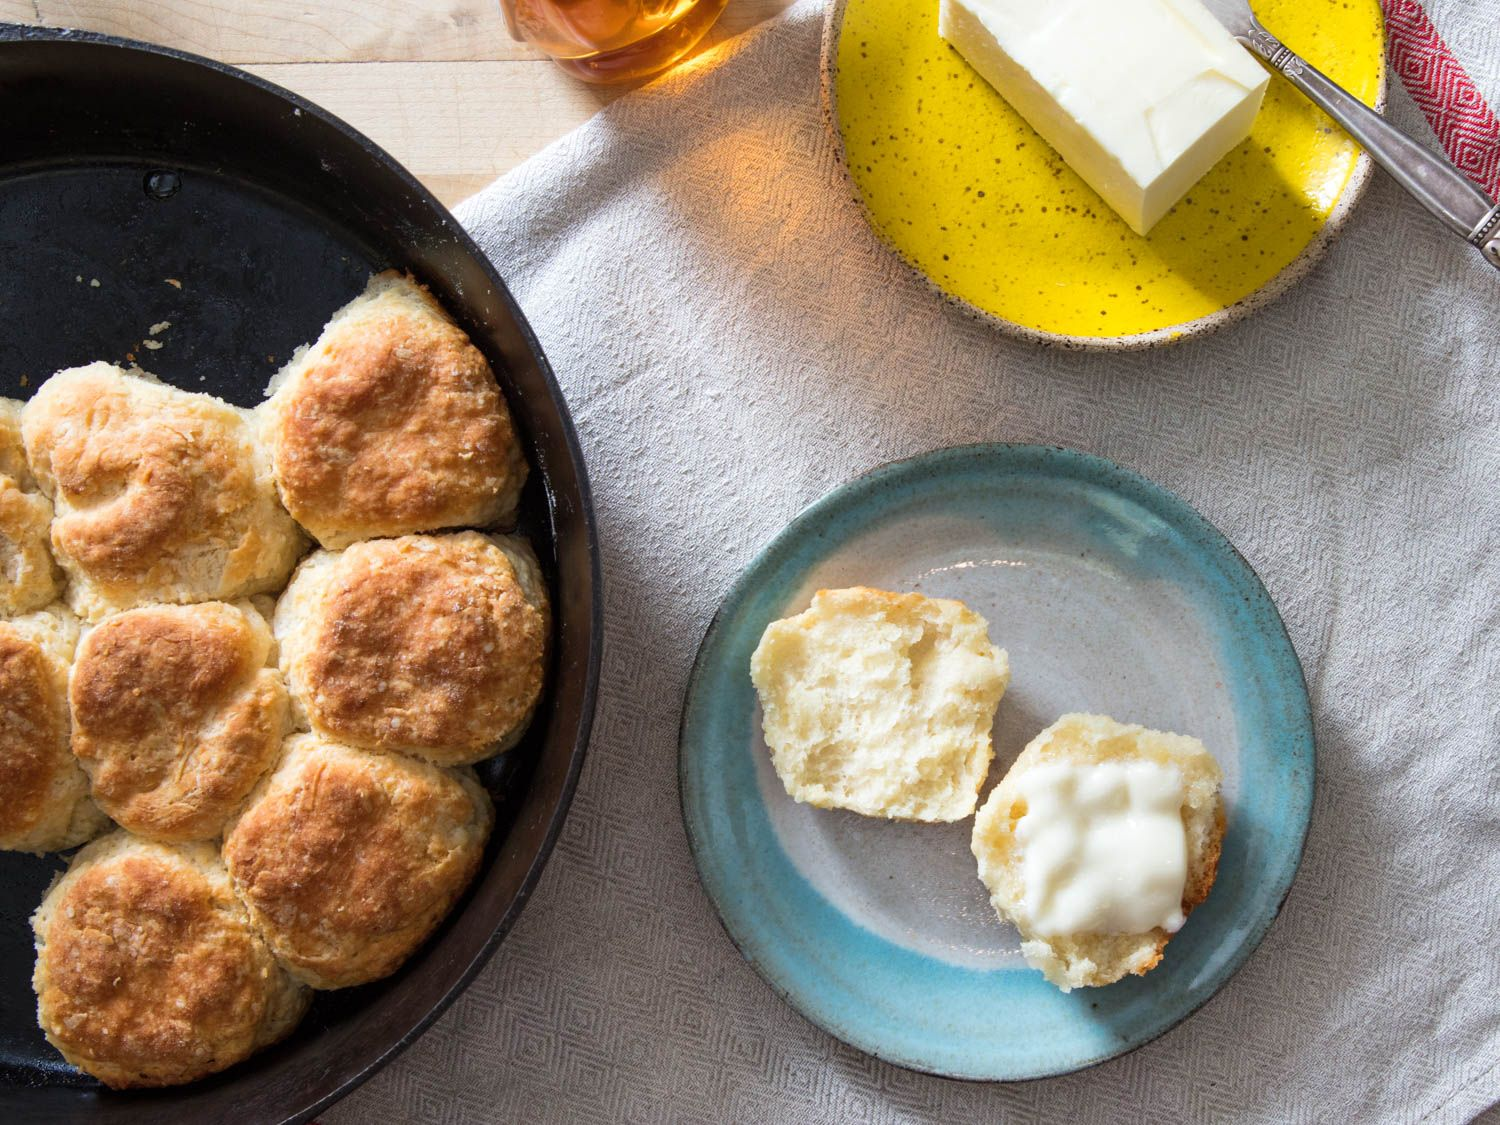 No Buttermilk No Problem These Biscuits Bake Up Tender Fluffy And Golden Brown Thanks To Plain Yogurt Which Keeps Them Wonderfully Thick And Moist As Well Recipe In 2020 Homemade